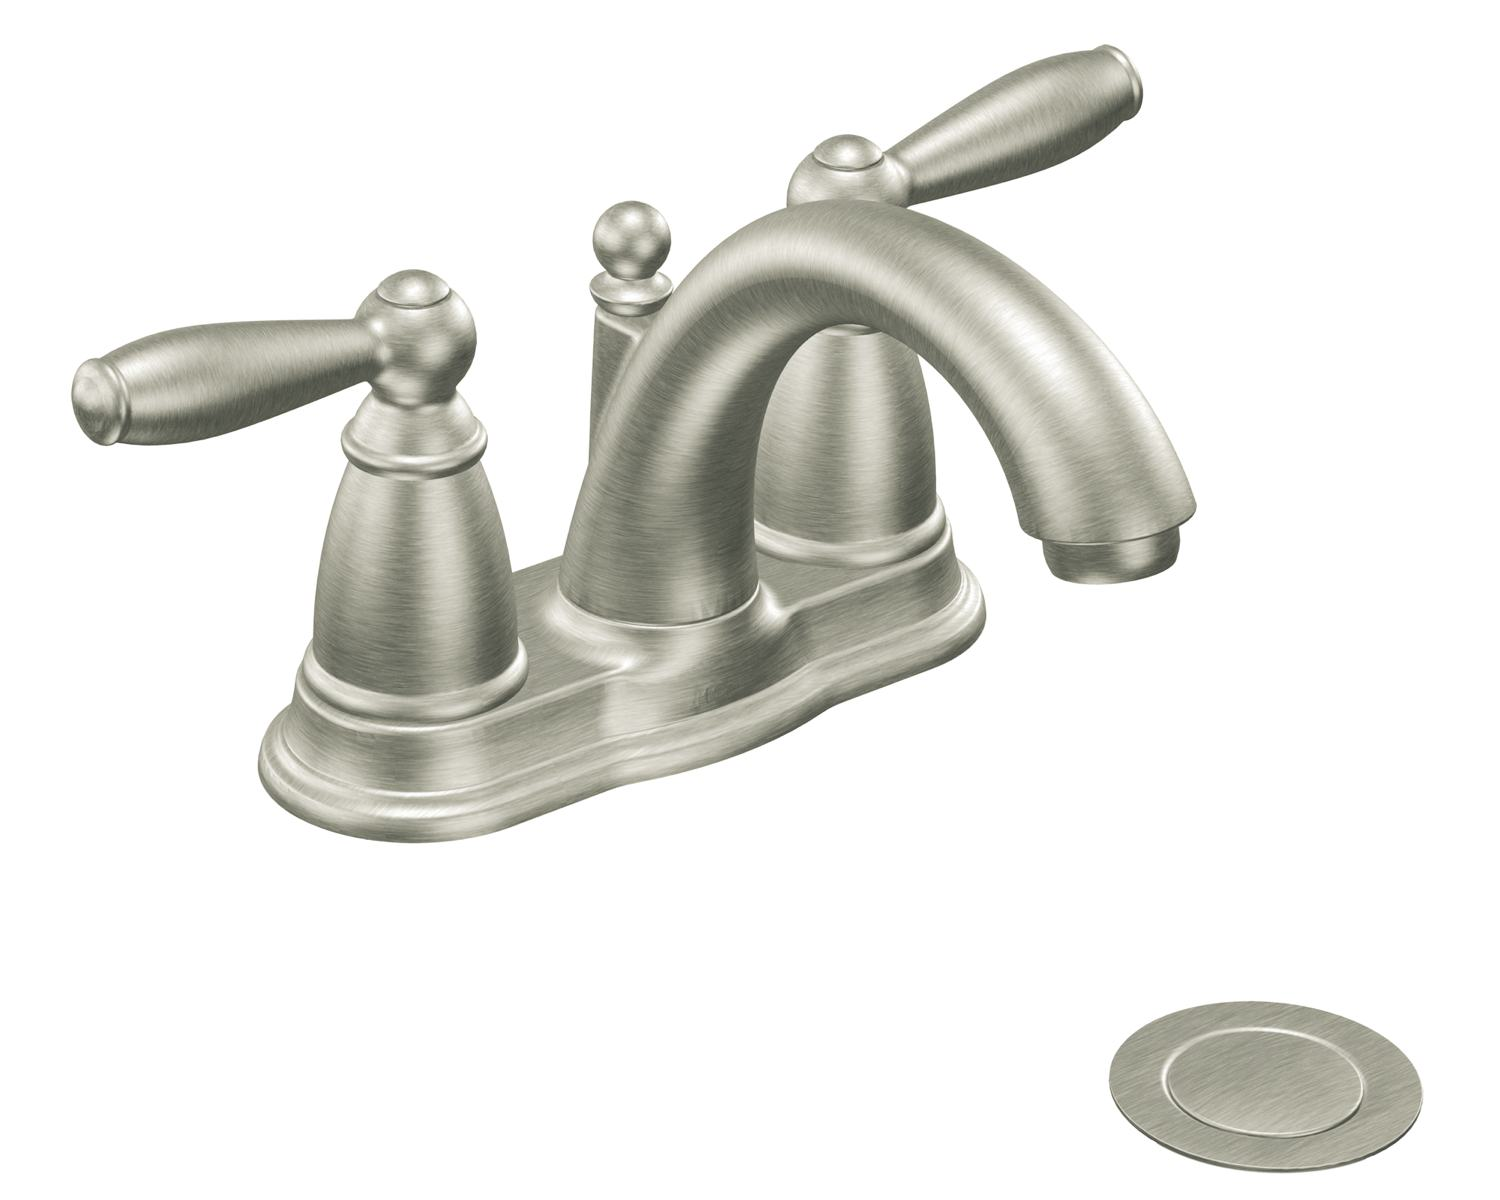 Moen 6610bn brantford two handle low arc centerset bathroom faucet with drain assembly brushed Amazon bathroom faucets moen